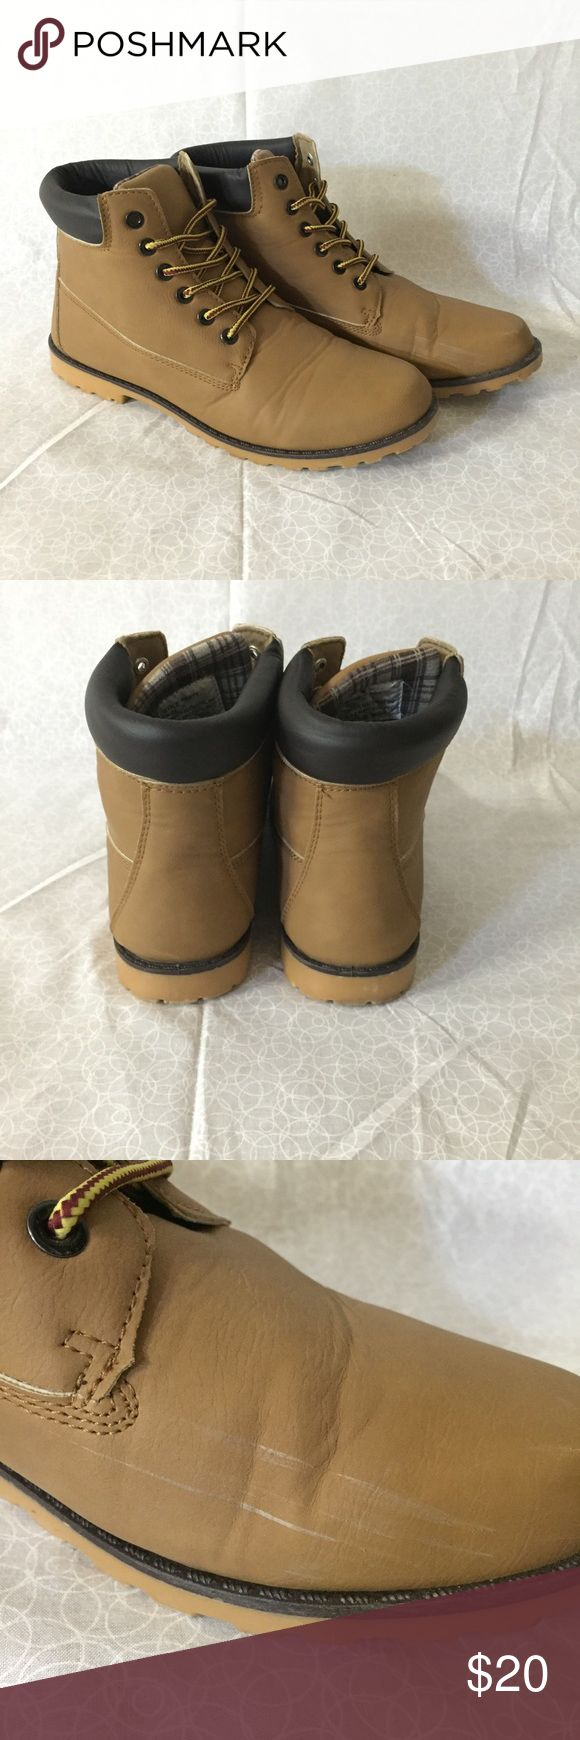 Timberland style boots •Timberland-style boots but not so expensive! •purchased them from Wet Seal •slight scuff marks but not very noticeable •super comfy - they kinda feel like slippers or UGGs! •selling because they're too big for me •good condition •size 11 •no trading •no Mercari •price negotiable Wet Seal Shoes Combat & Moto Boots